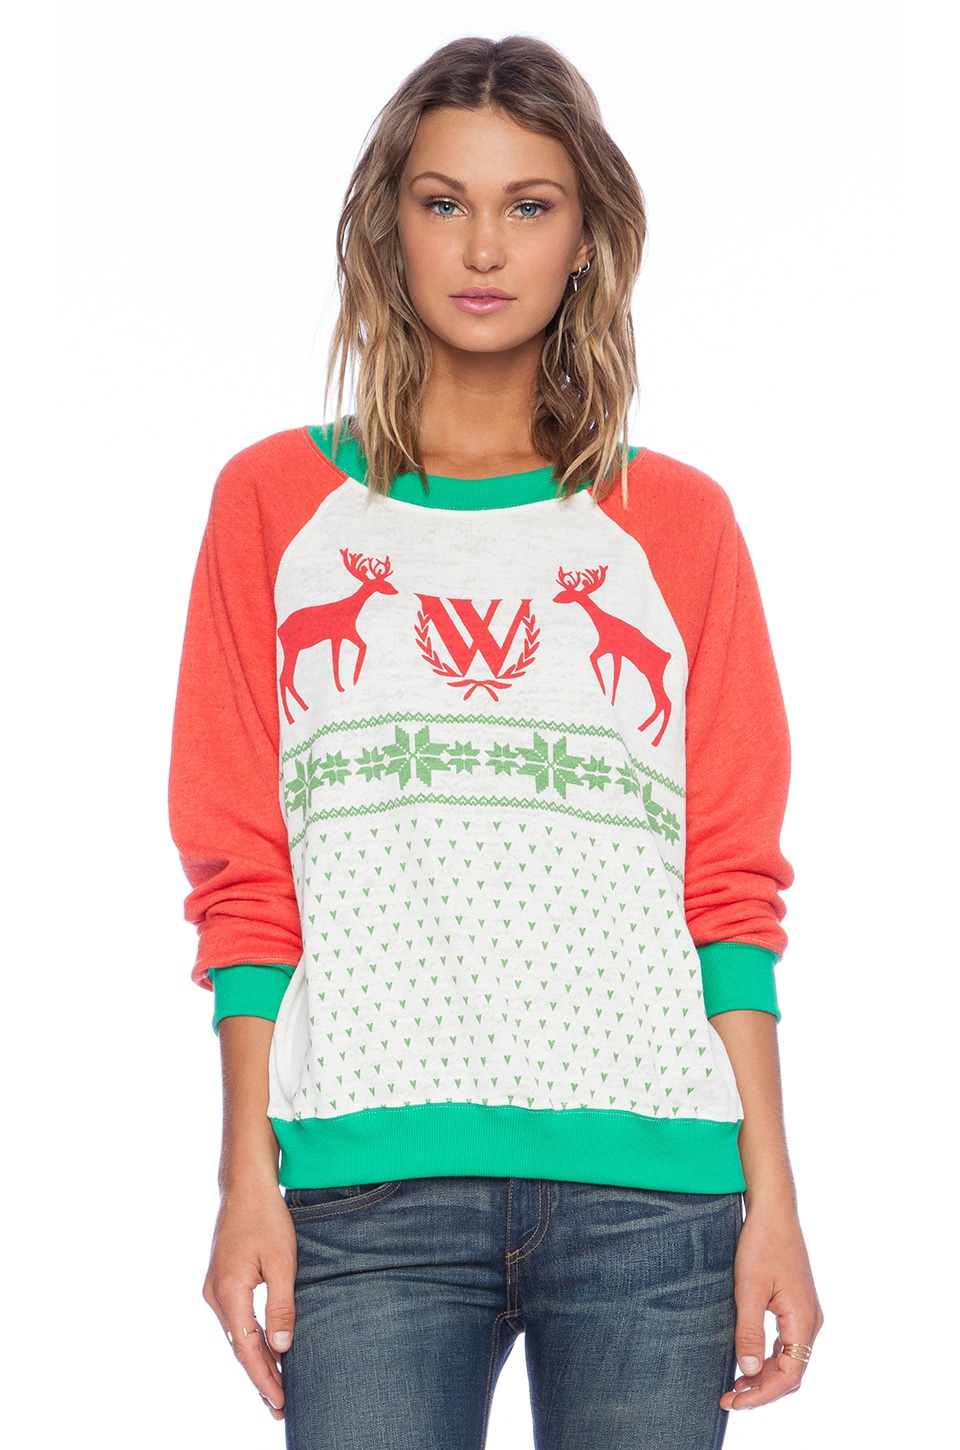 Wildfox Couture Pastel Snow Babe Sweater in Multi | REVOLVE